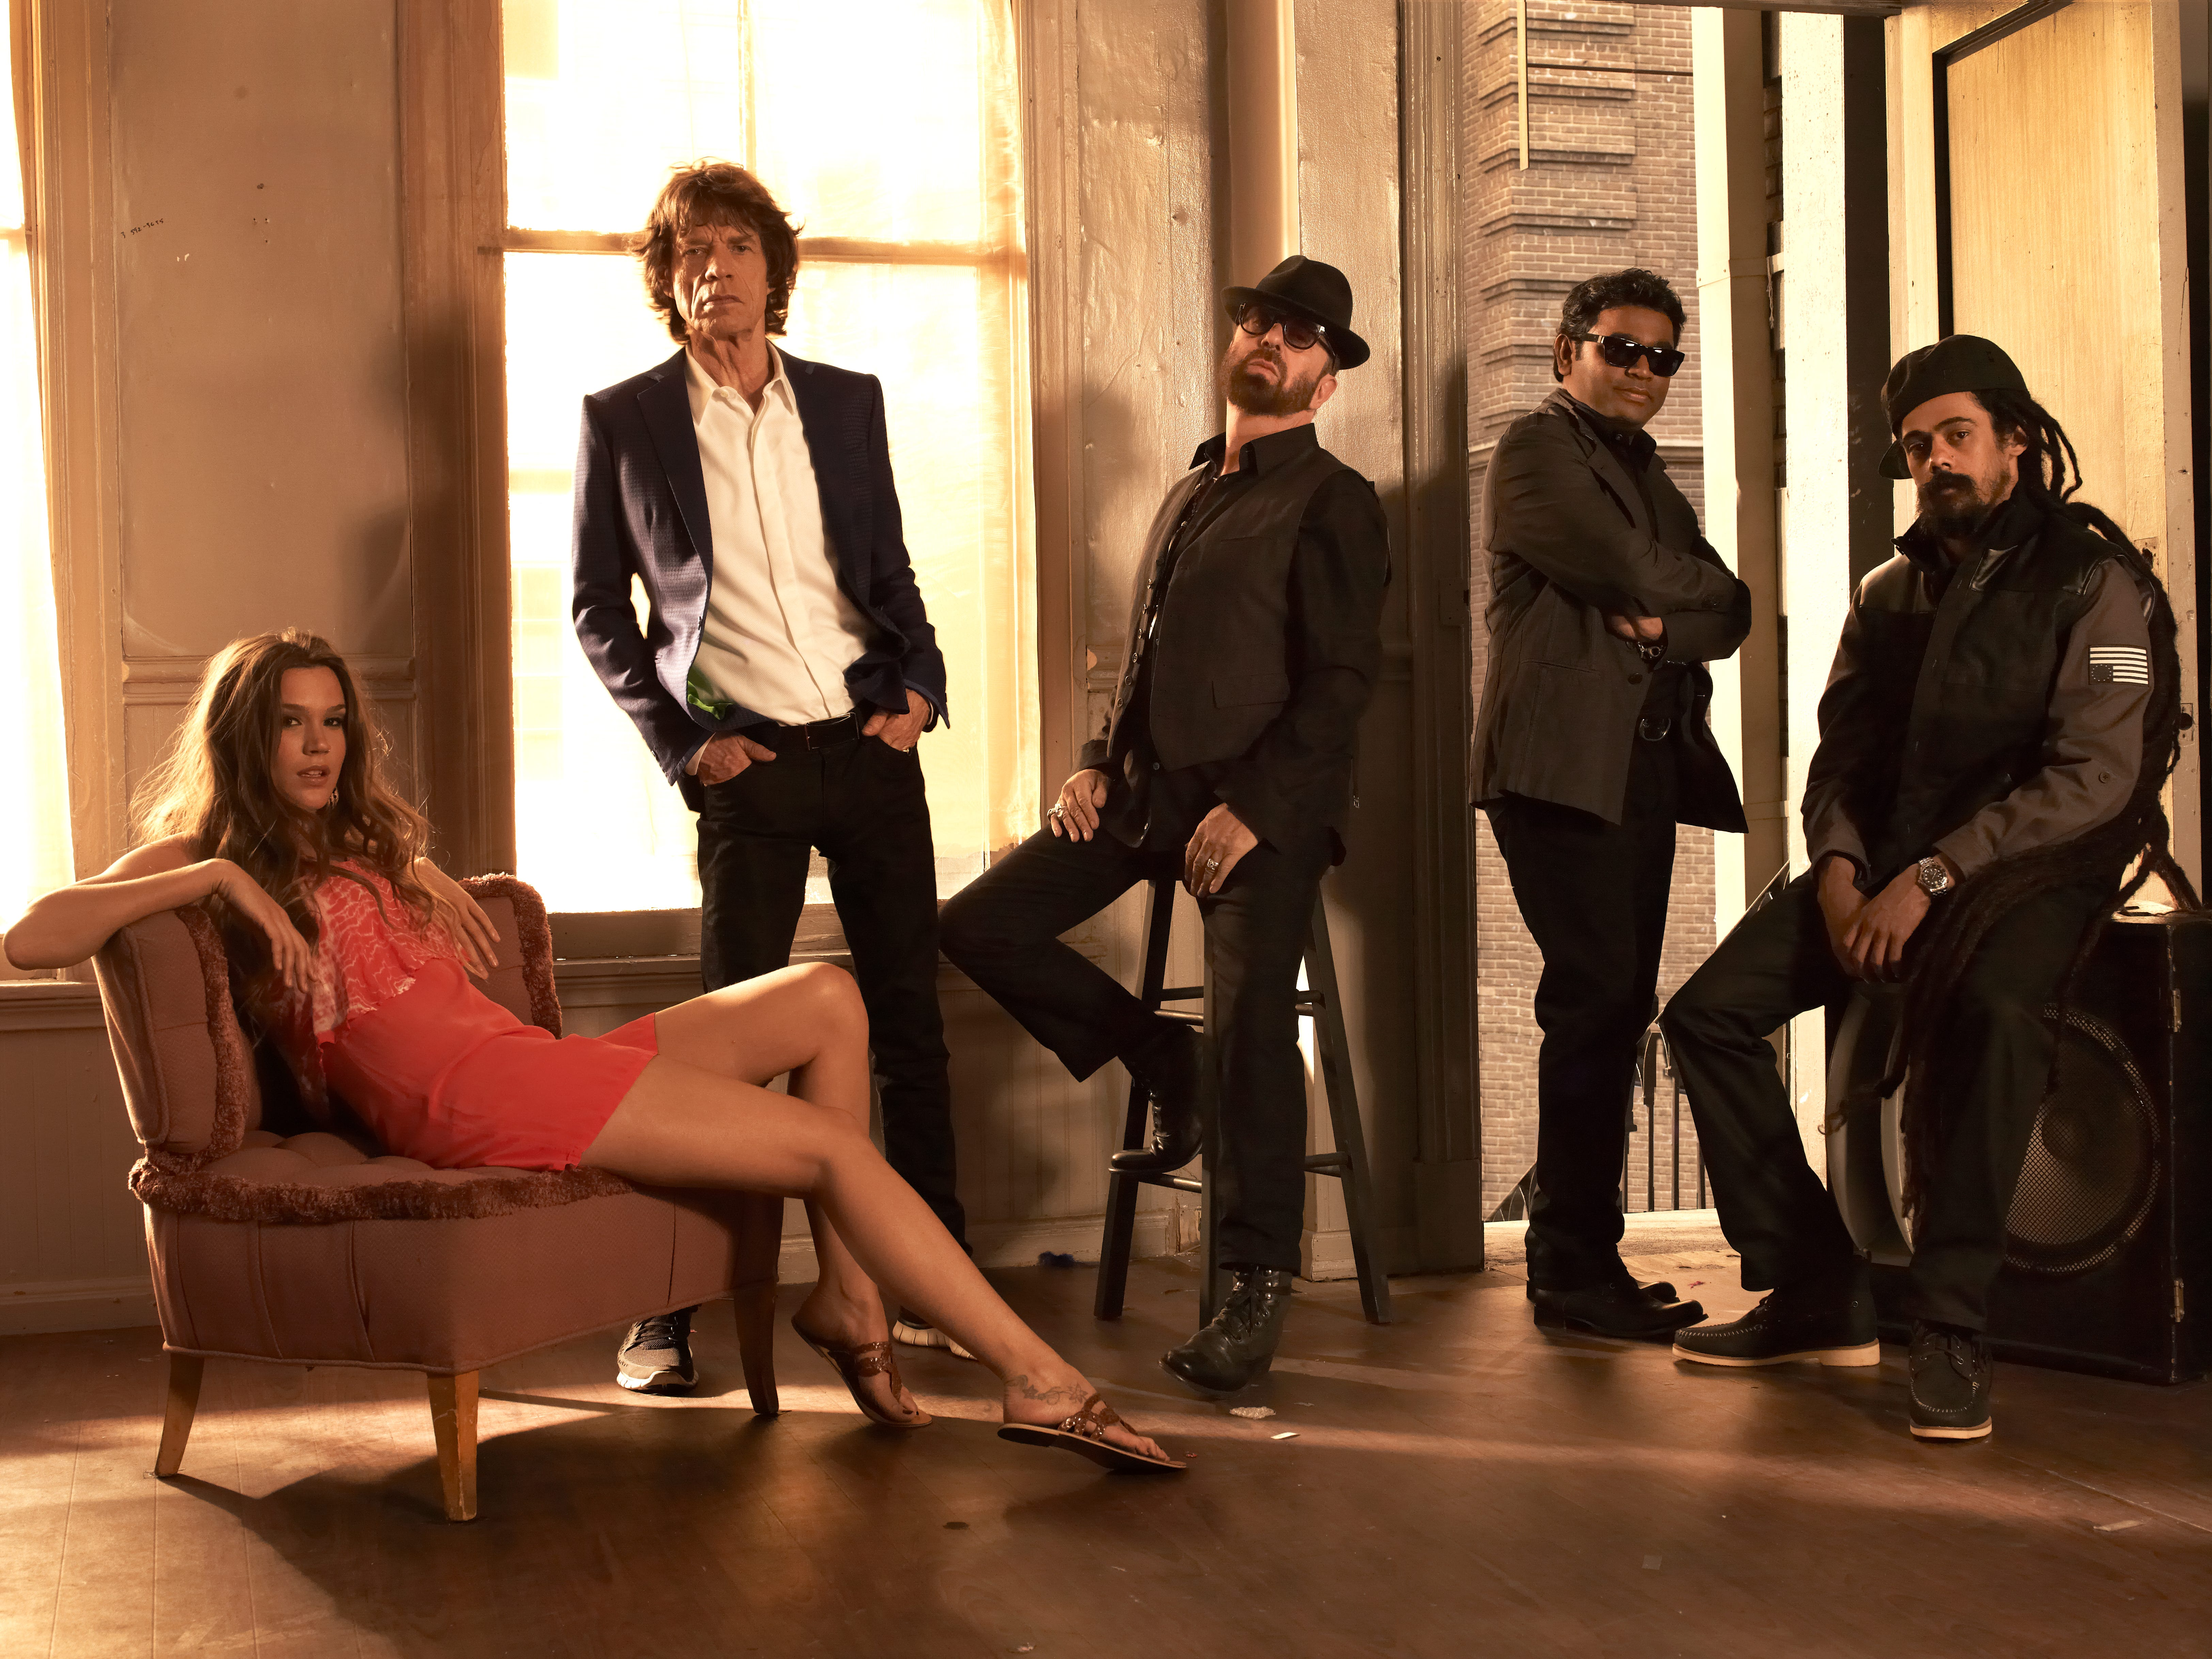 SUPERHEAVY -- Joss Stone, lefft, Mick Jagger, Dave Stewart, A.R. Rahman and Damian Marley.  HANDOUT photo by Kristin Burns [Via MerlinFTP Drop]